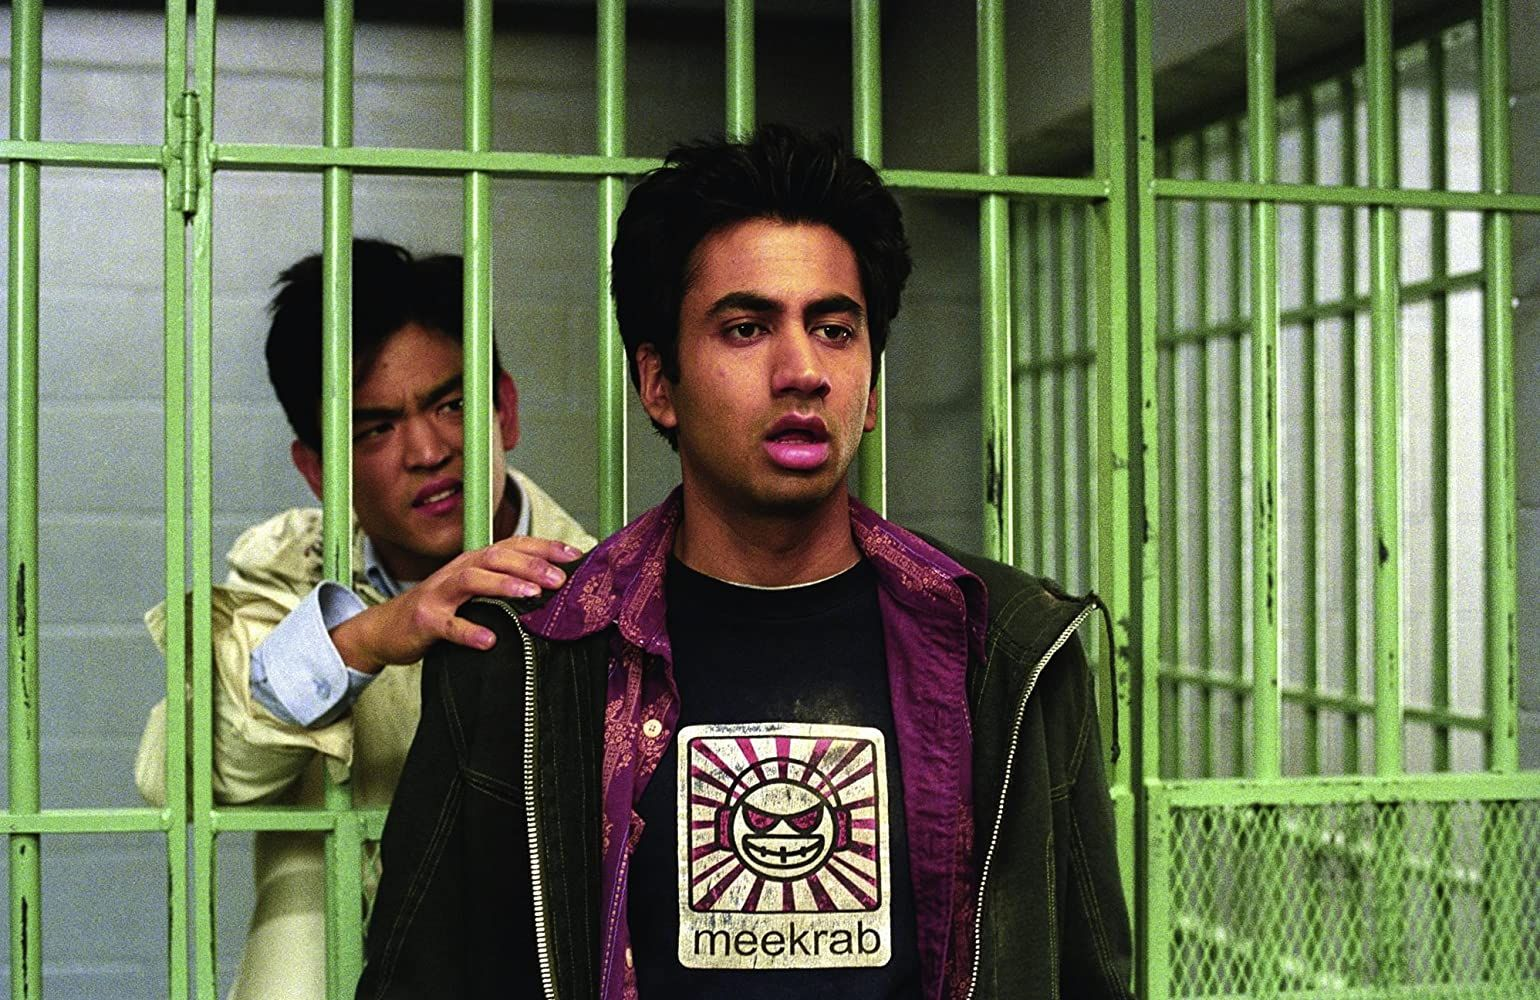 John Cho and Kal Penn in Harold & Kumar Go to White Castle